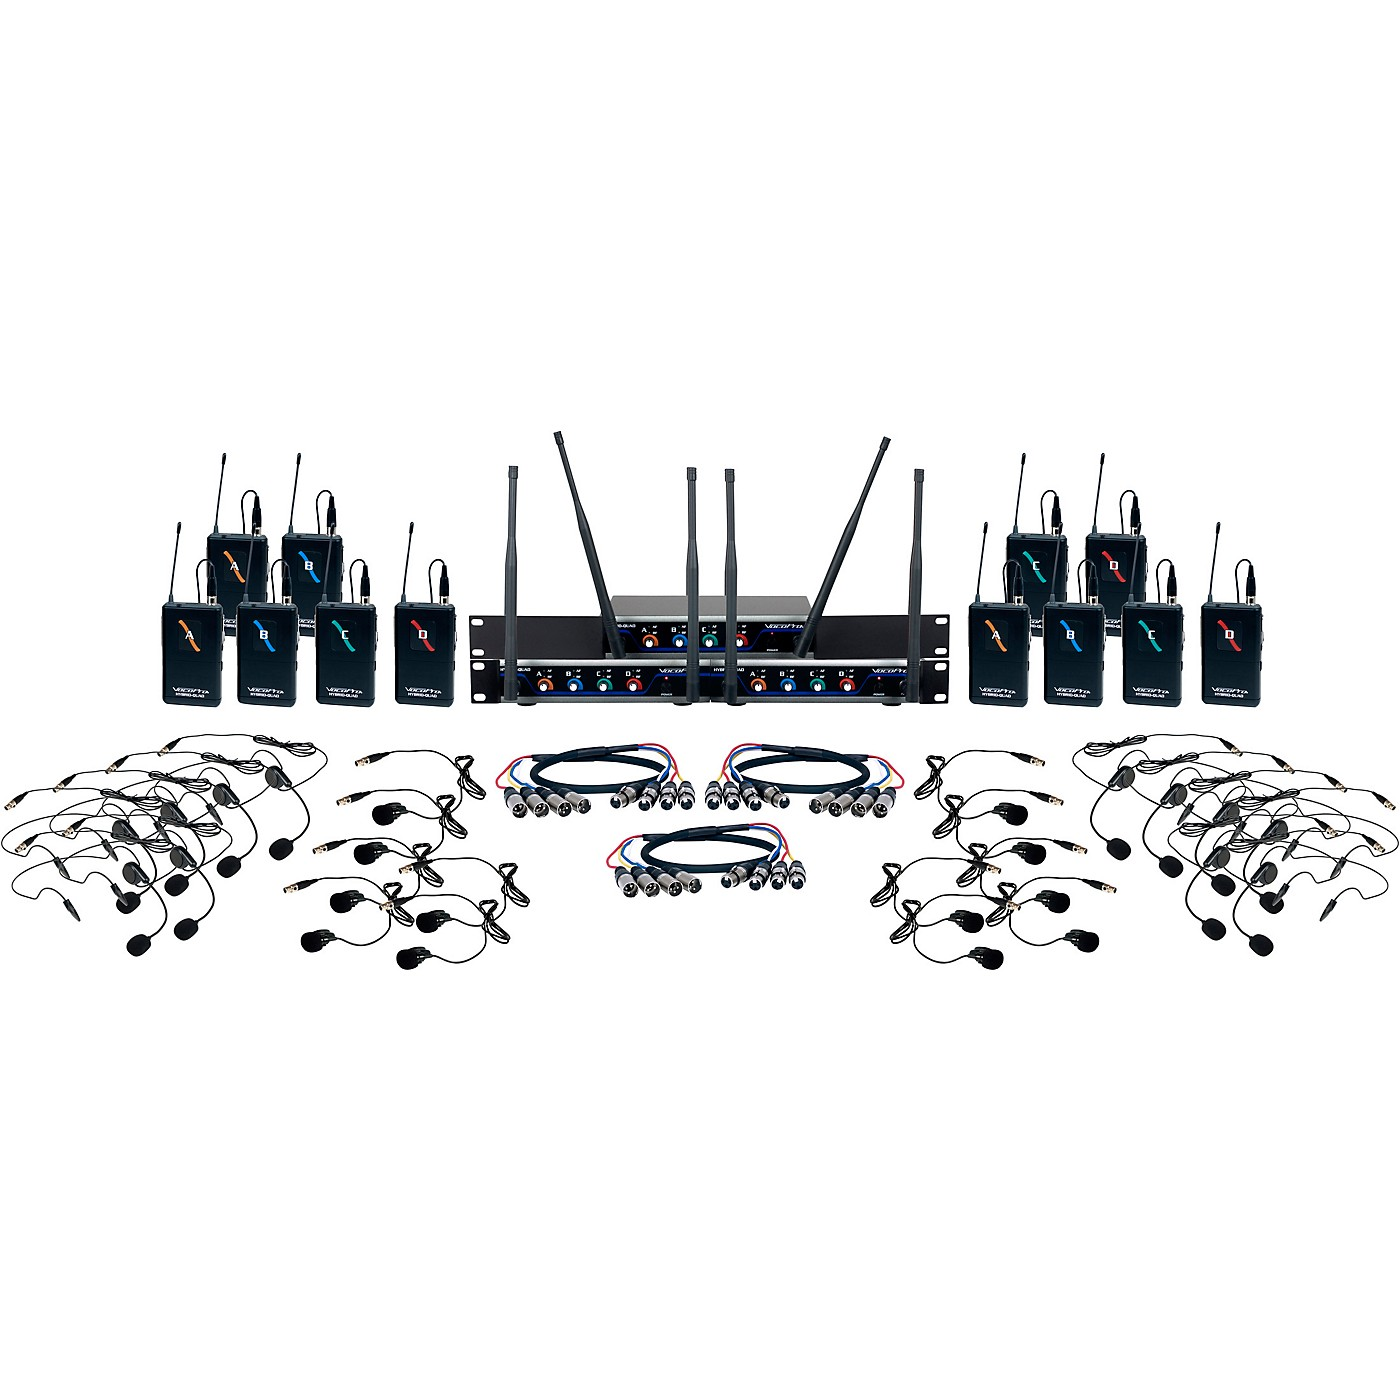 Vocopro Digital-Play-12 12-Channel UHF Wireless Headset/Lapel Microphone System thumbnail